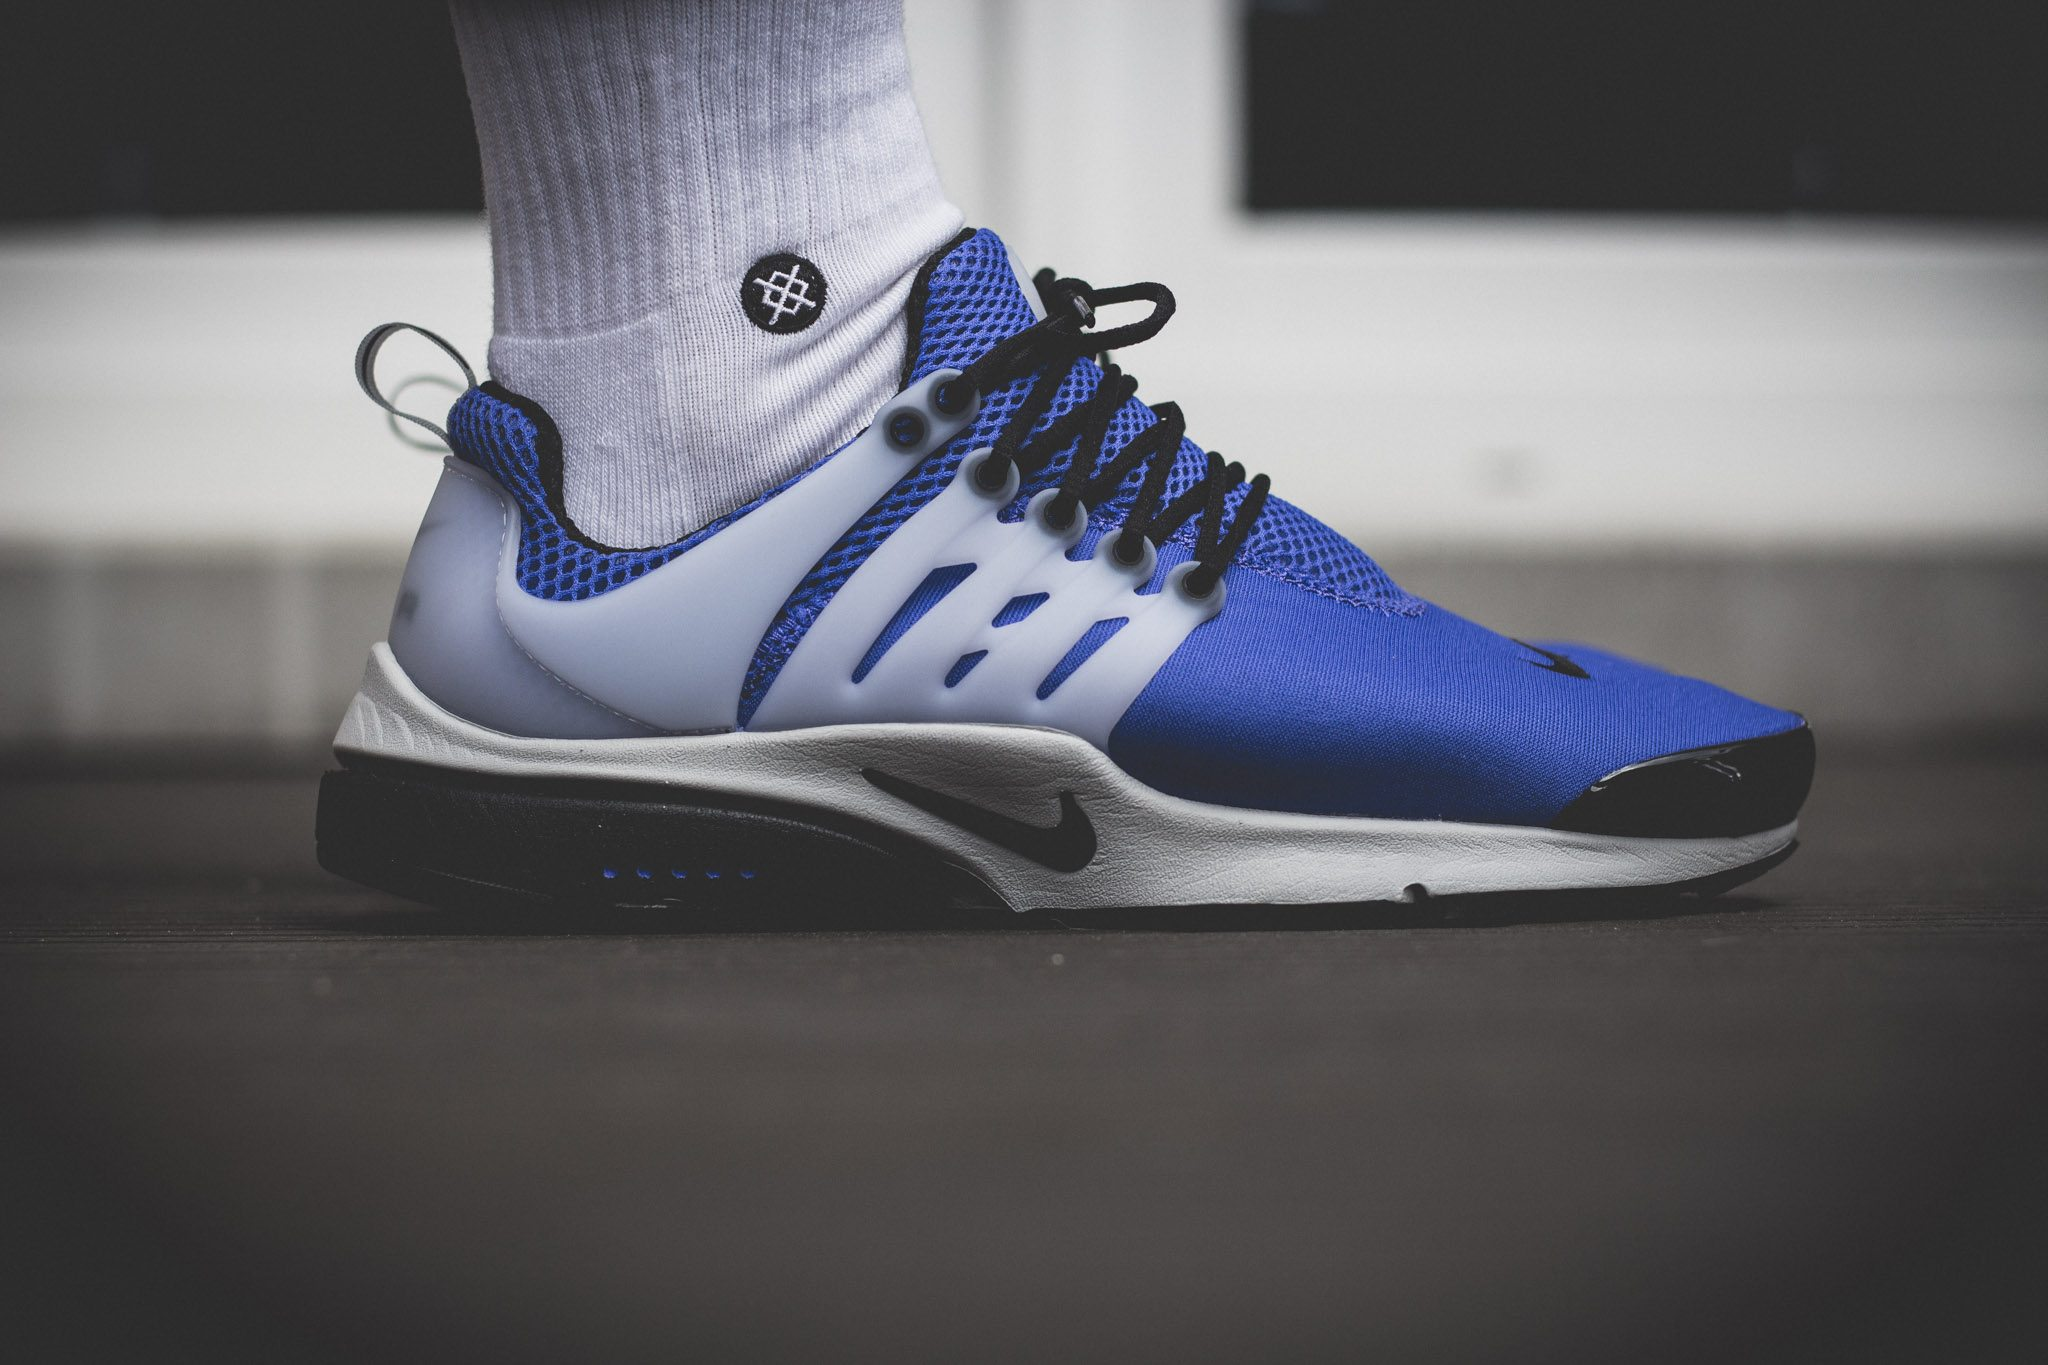 Nike Air Presto Camo On Feet